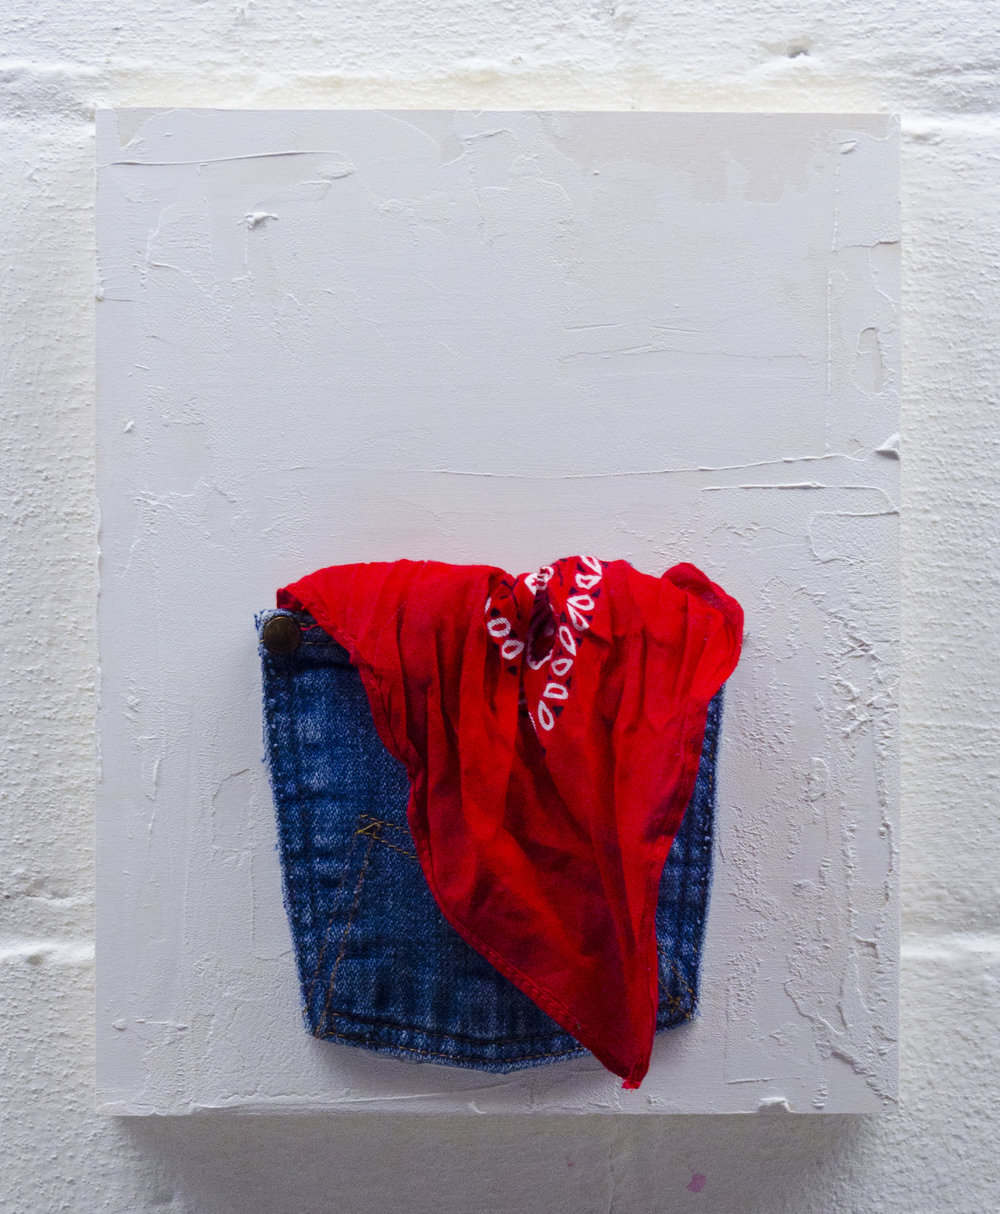 Knuckles   2017  Acrylic, molding paste, denim, bandana on wood panel